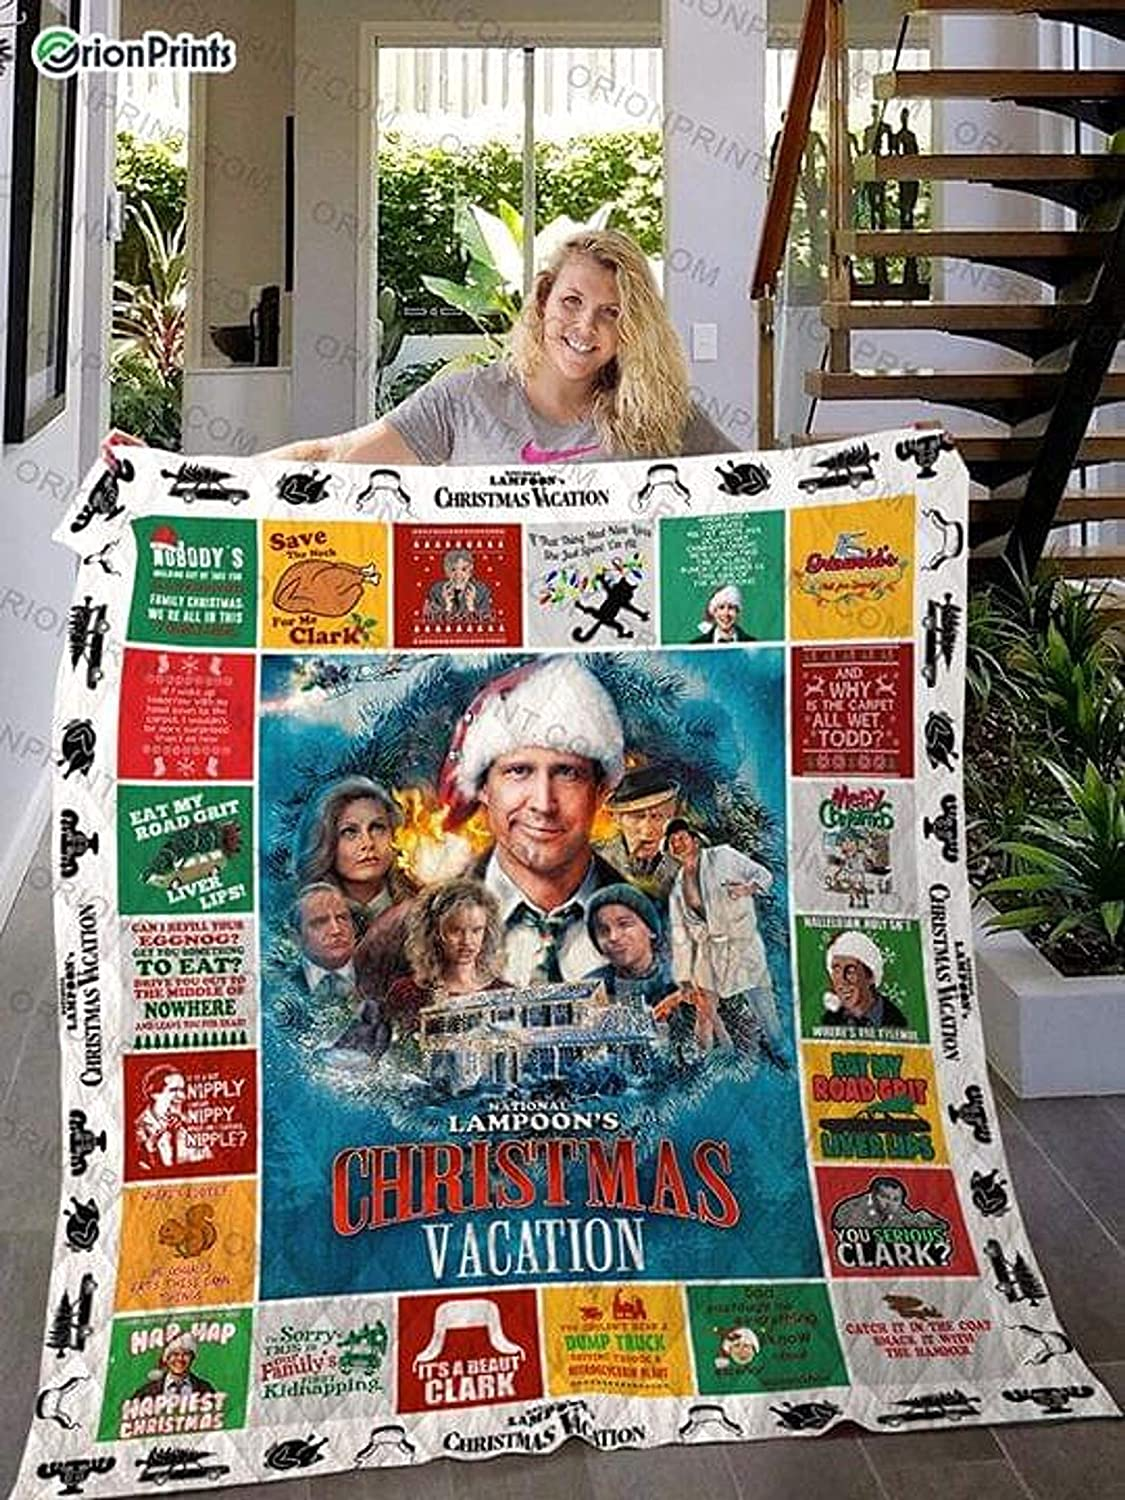 Gifts Blanket National Lampoon's Christmas Vacation Cozy Plush Fleece Blanket Size 60x80 inch Gift for Family Awesome Decor Home